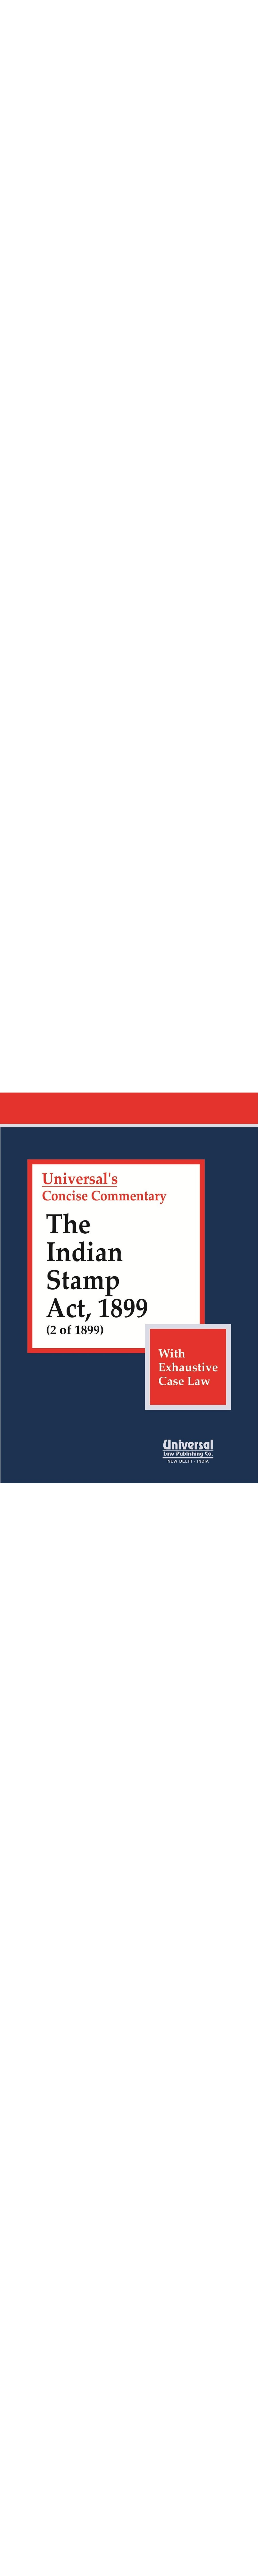 1000x10000 Indian Stamp Act 1899 2 Of 1899